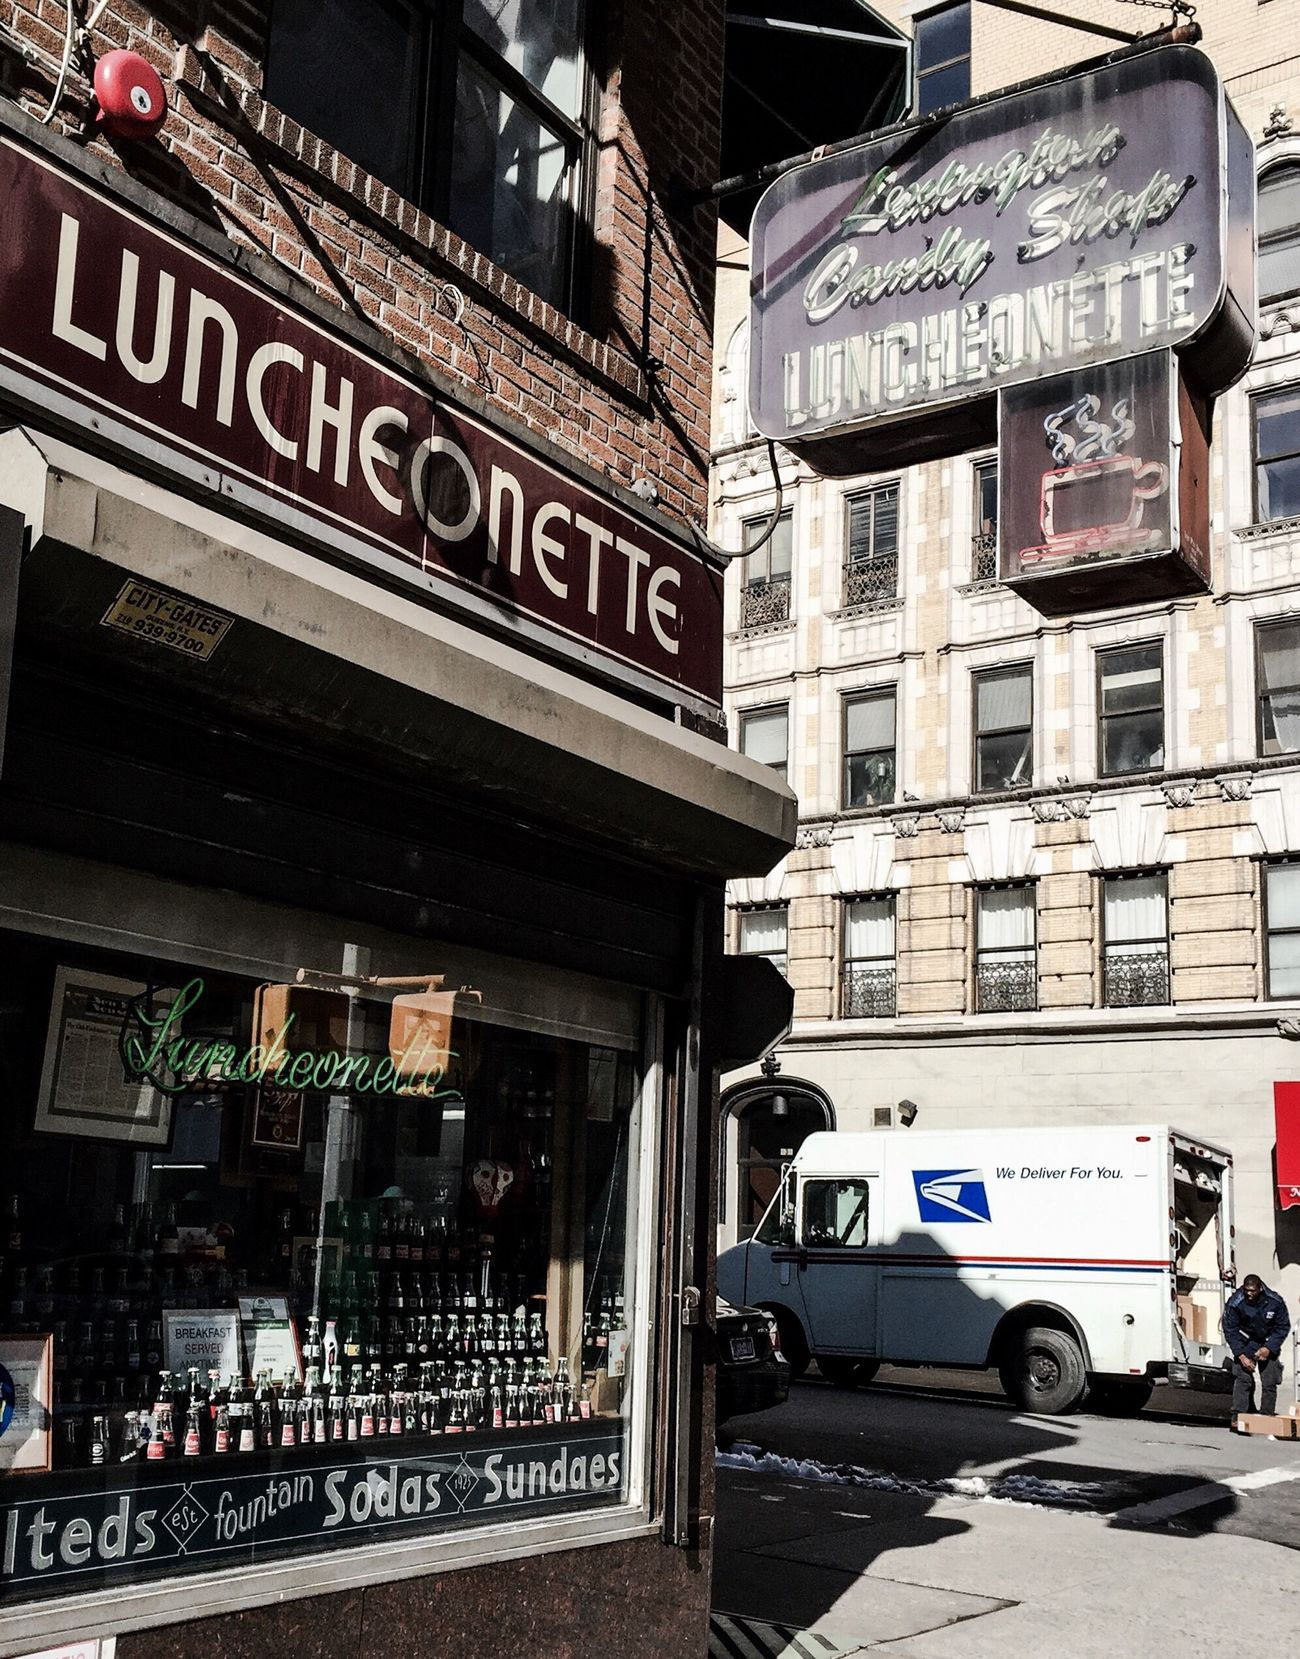 Old School Goodness | Manhattan Streetphotography Luncheonette Gothams_ambassador